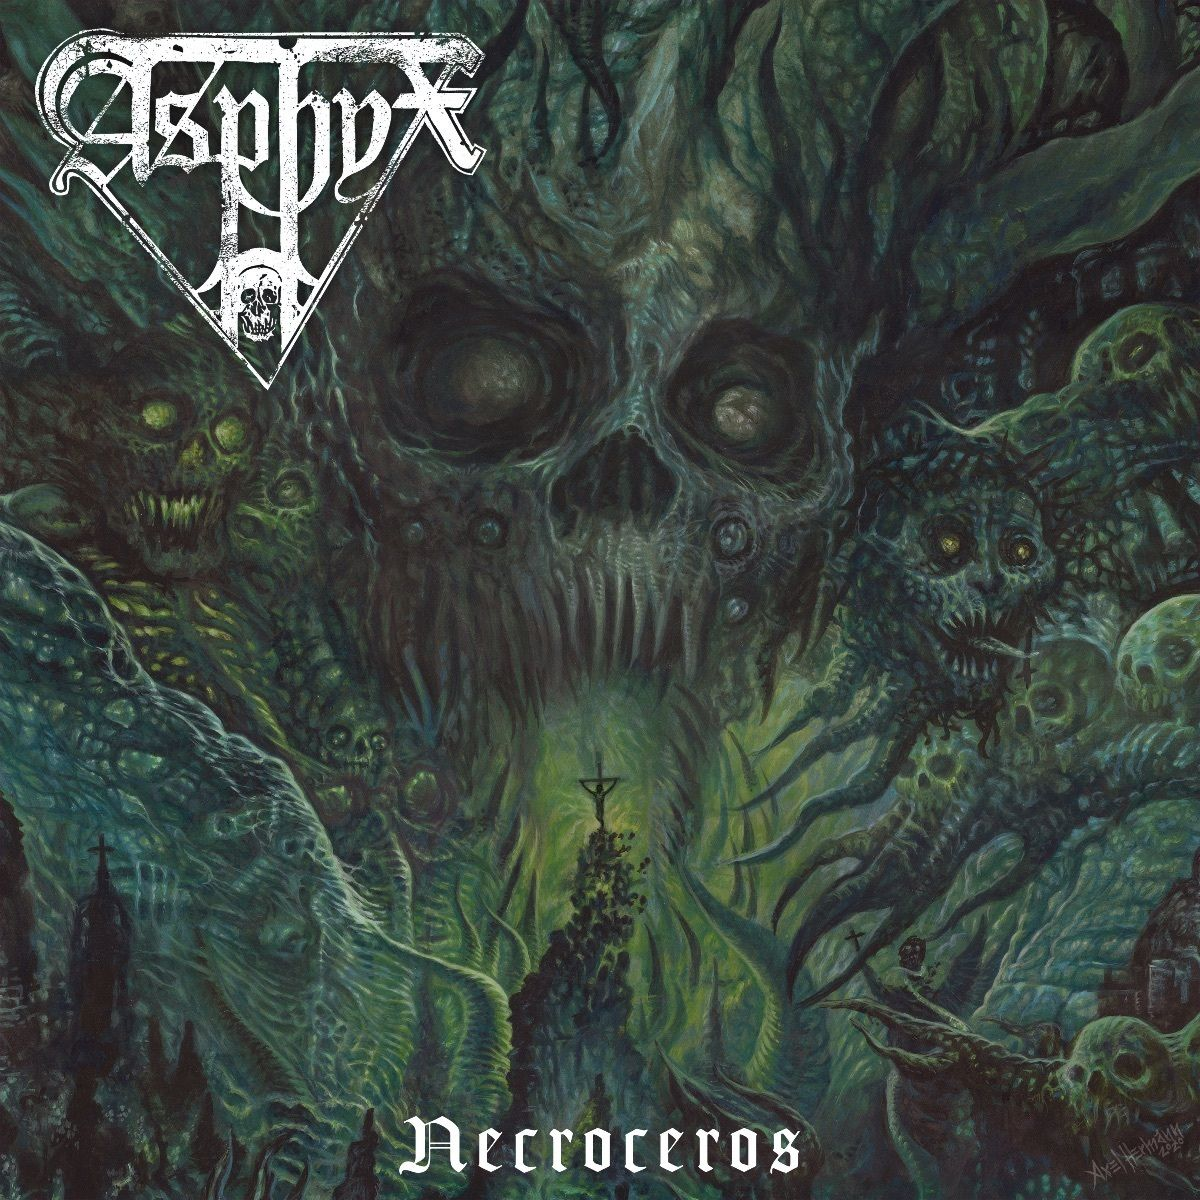 """> @pitchfork's list of 7 New Albums You Should Listen to Now includes Asphyx's album """"Necroceros,"""" out now on @centurymedia"""